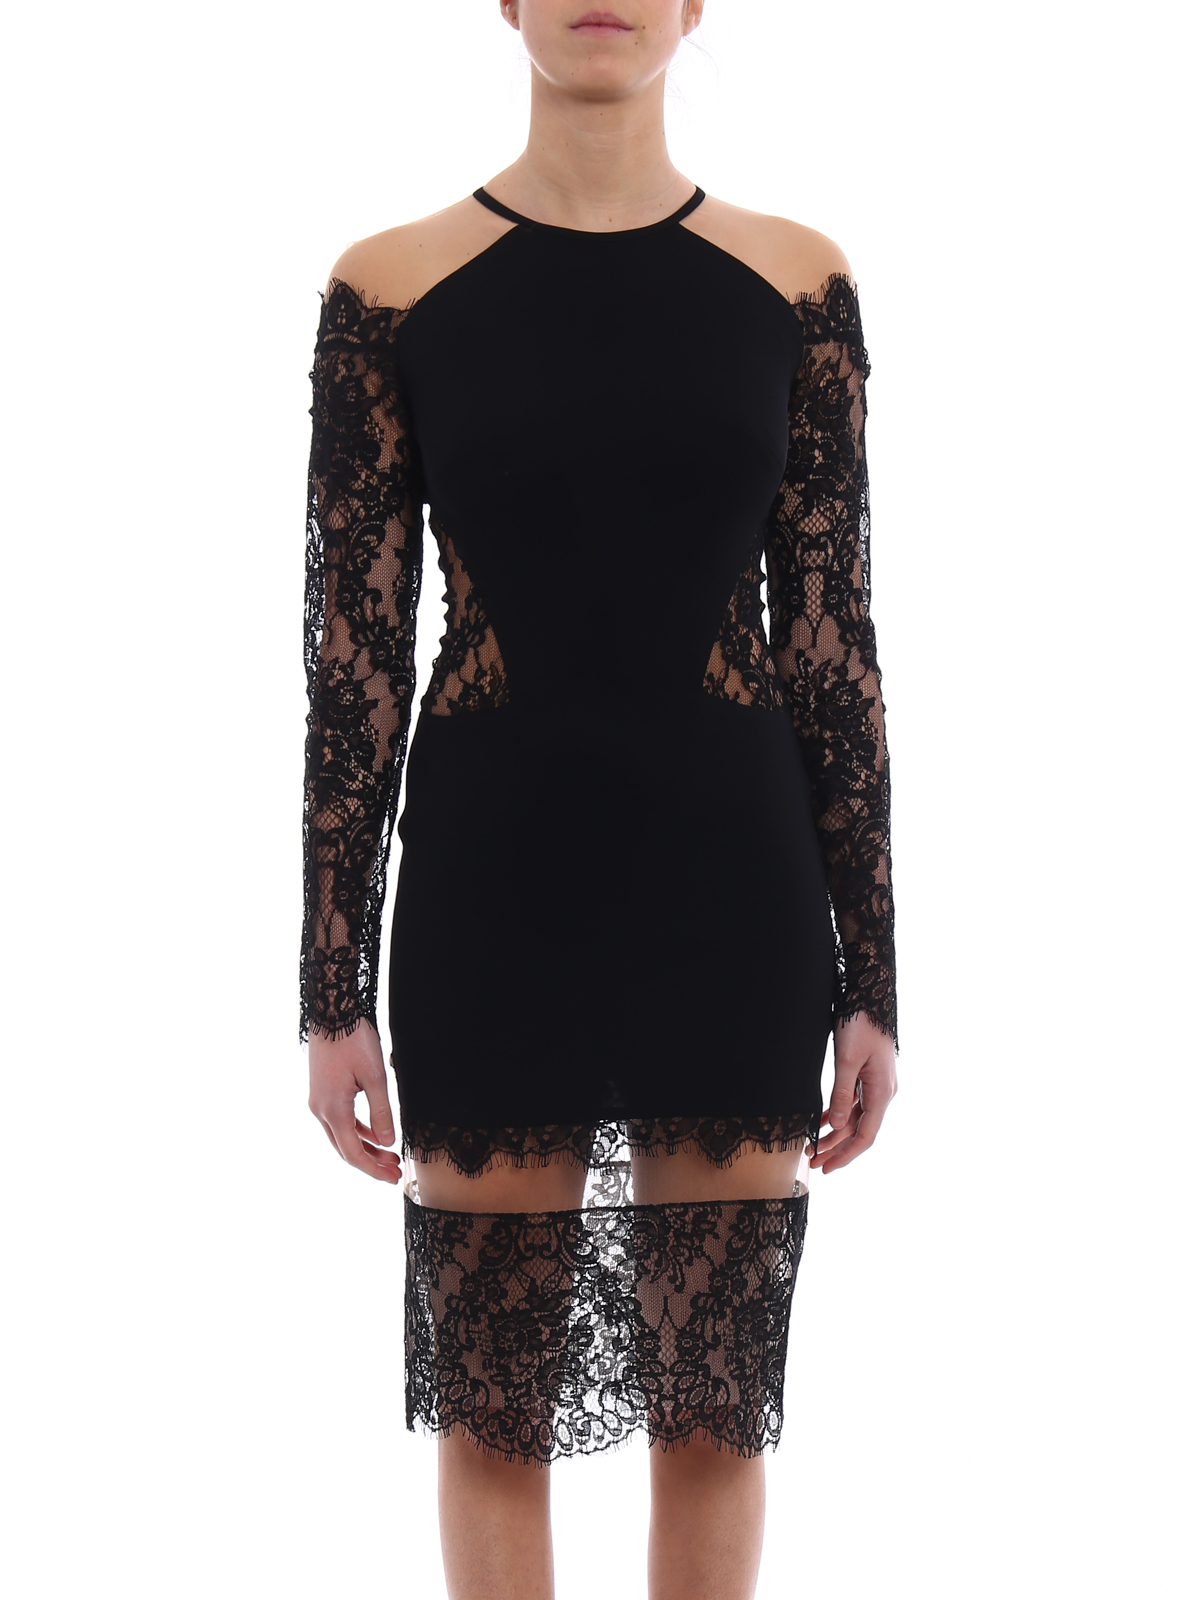 ff2ce839134 iKRIX-philipp-plein-cocktail-dresses-laced-lack-viscose-and-lace-dress-00000125204f00s003.jpg